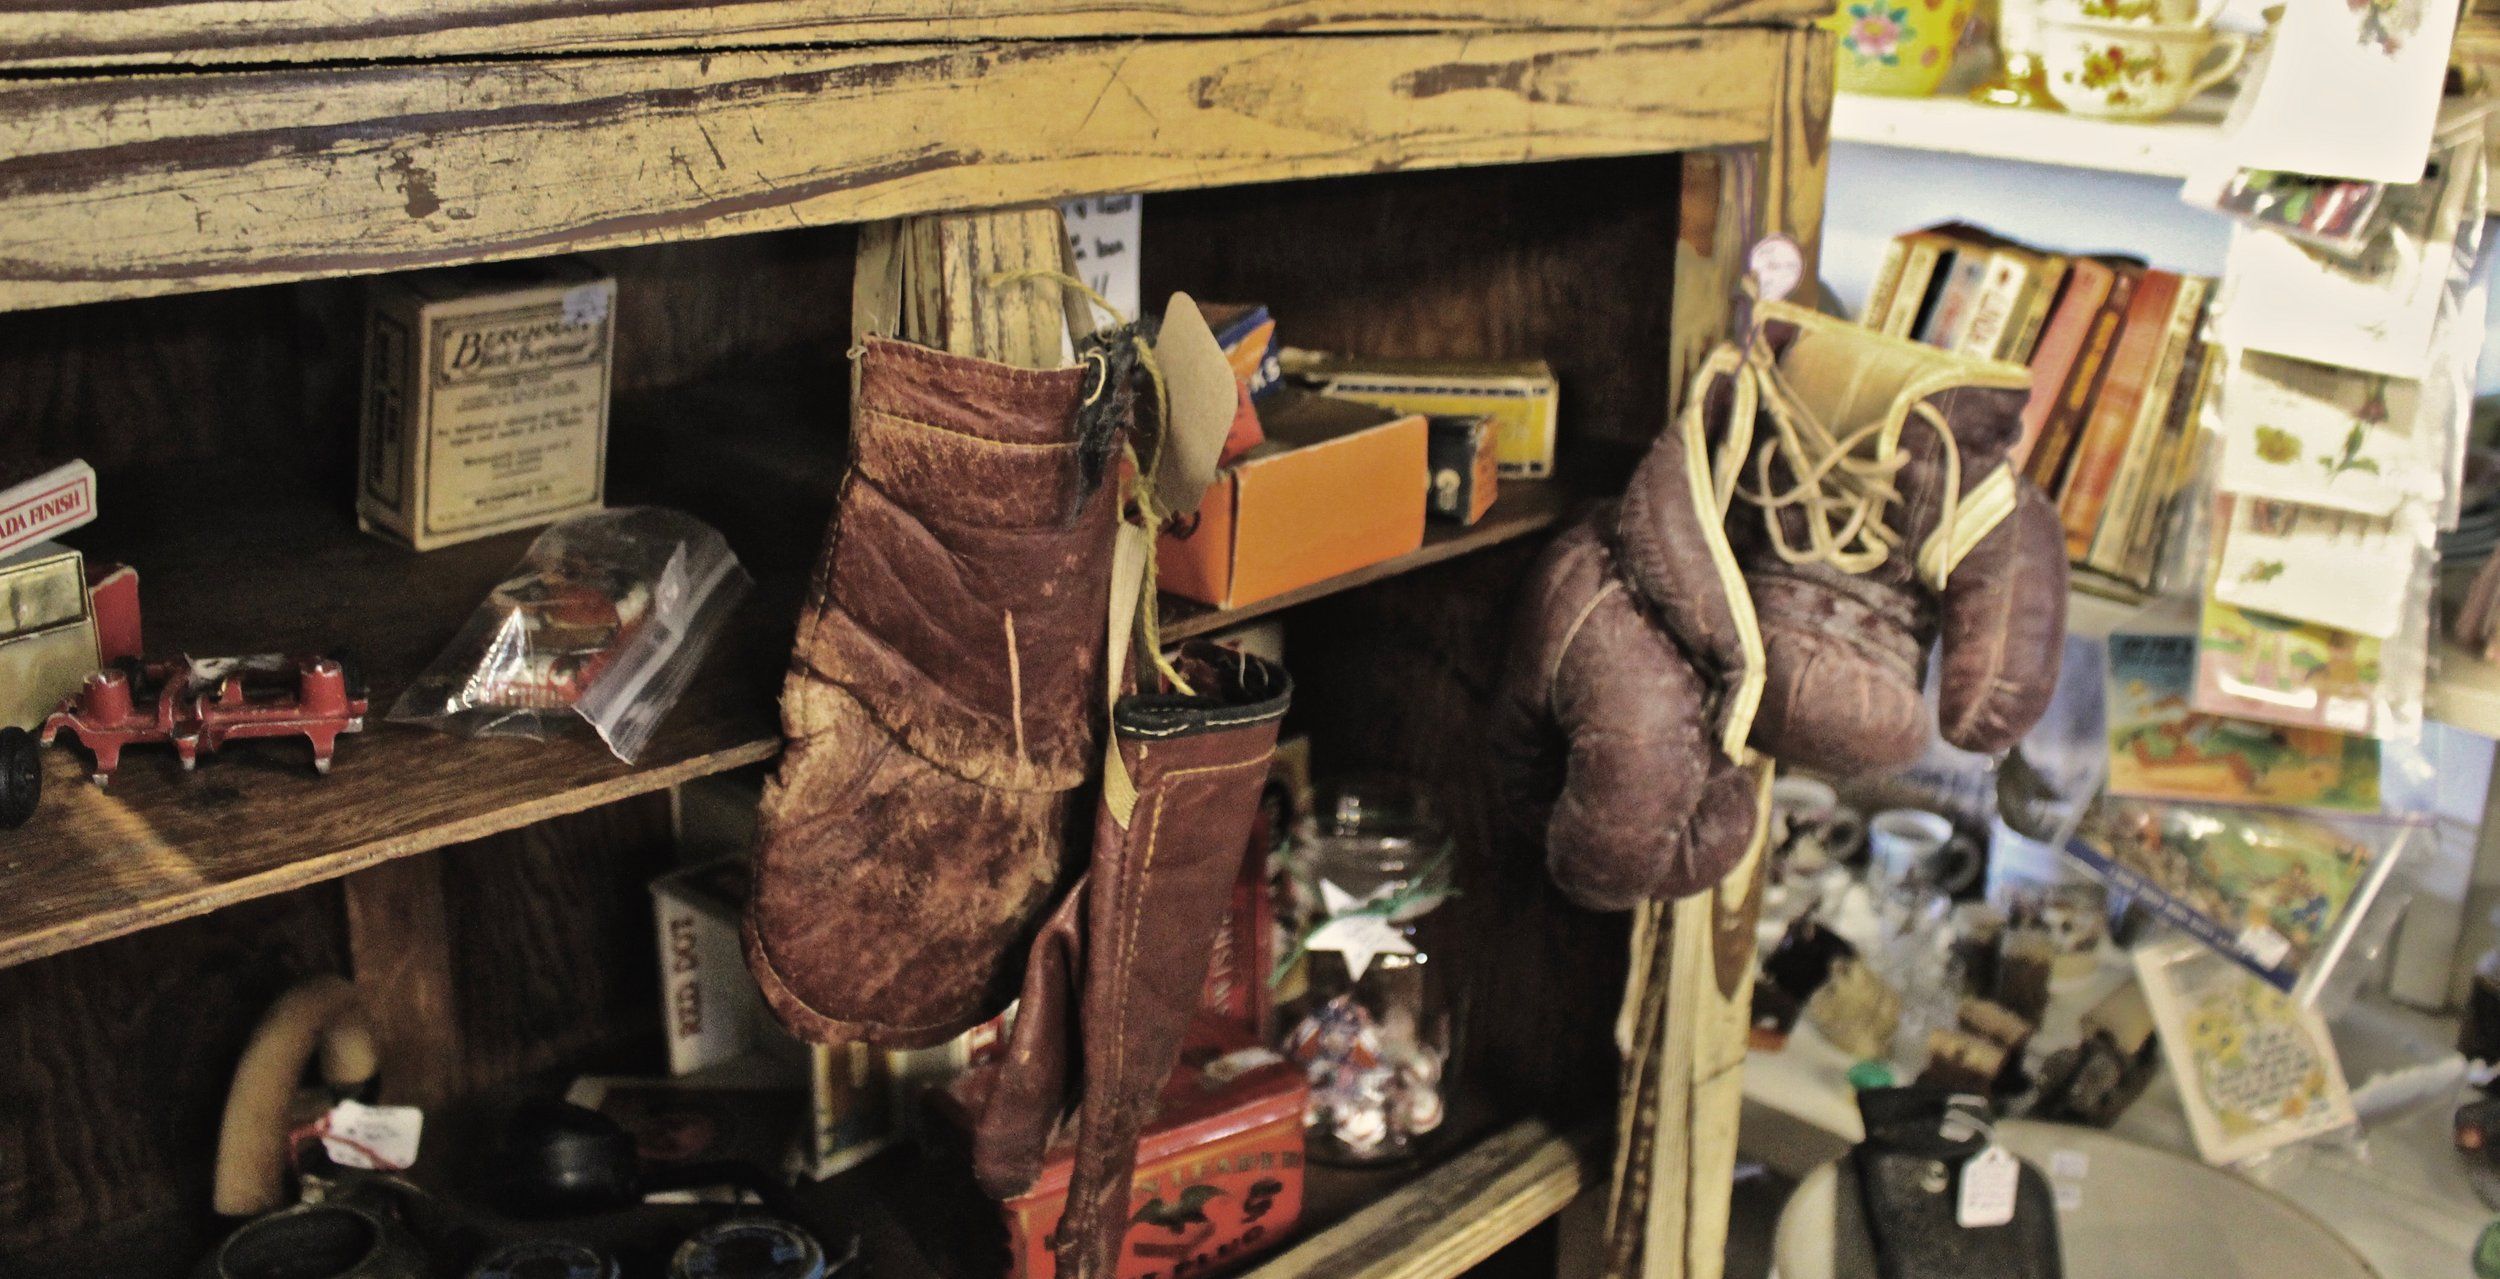 Worn boxing gloves hang as antiques from the cabinet